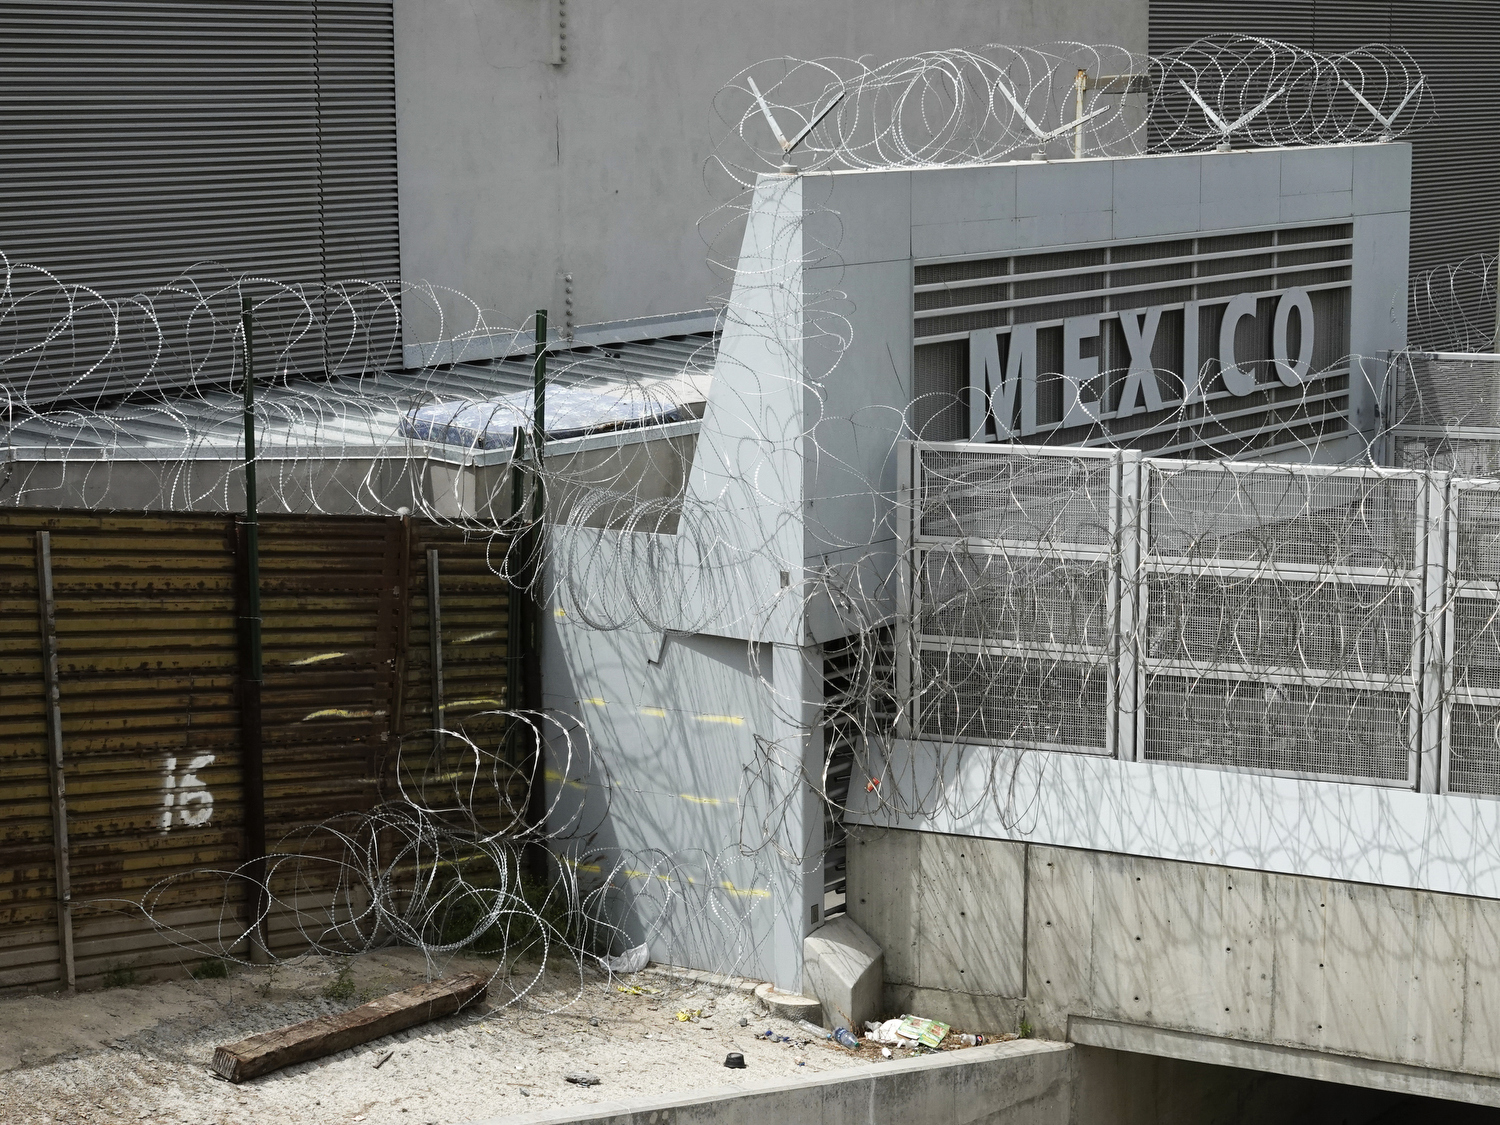 2019. San Diego, California. USA. Entrance to Mexico at the Mexico-USA border between San Diego and Tijuana.